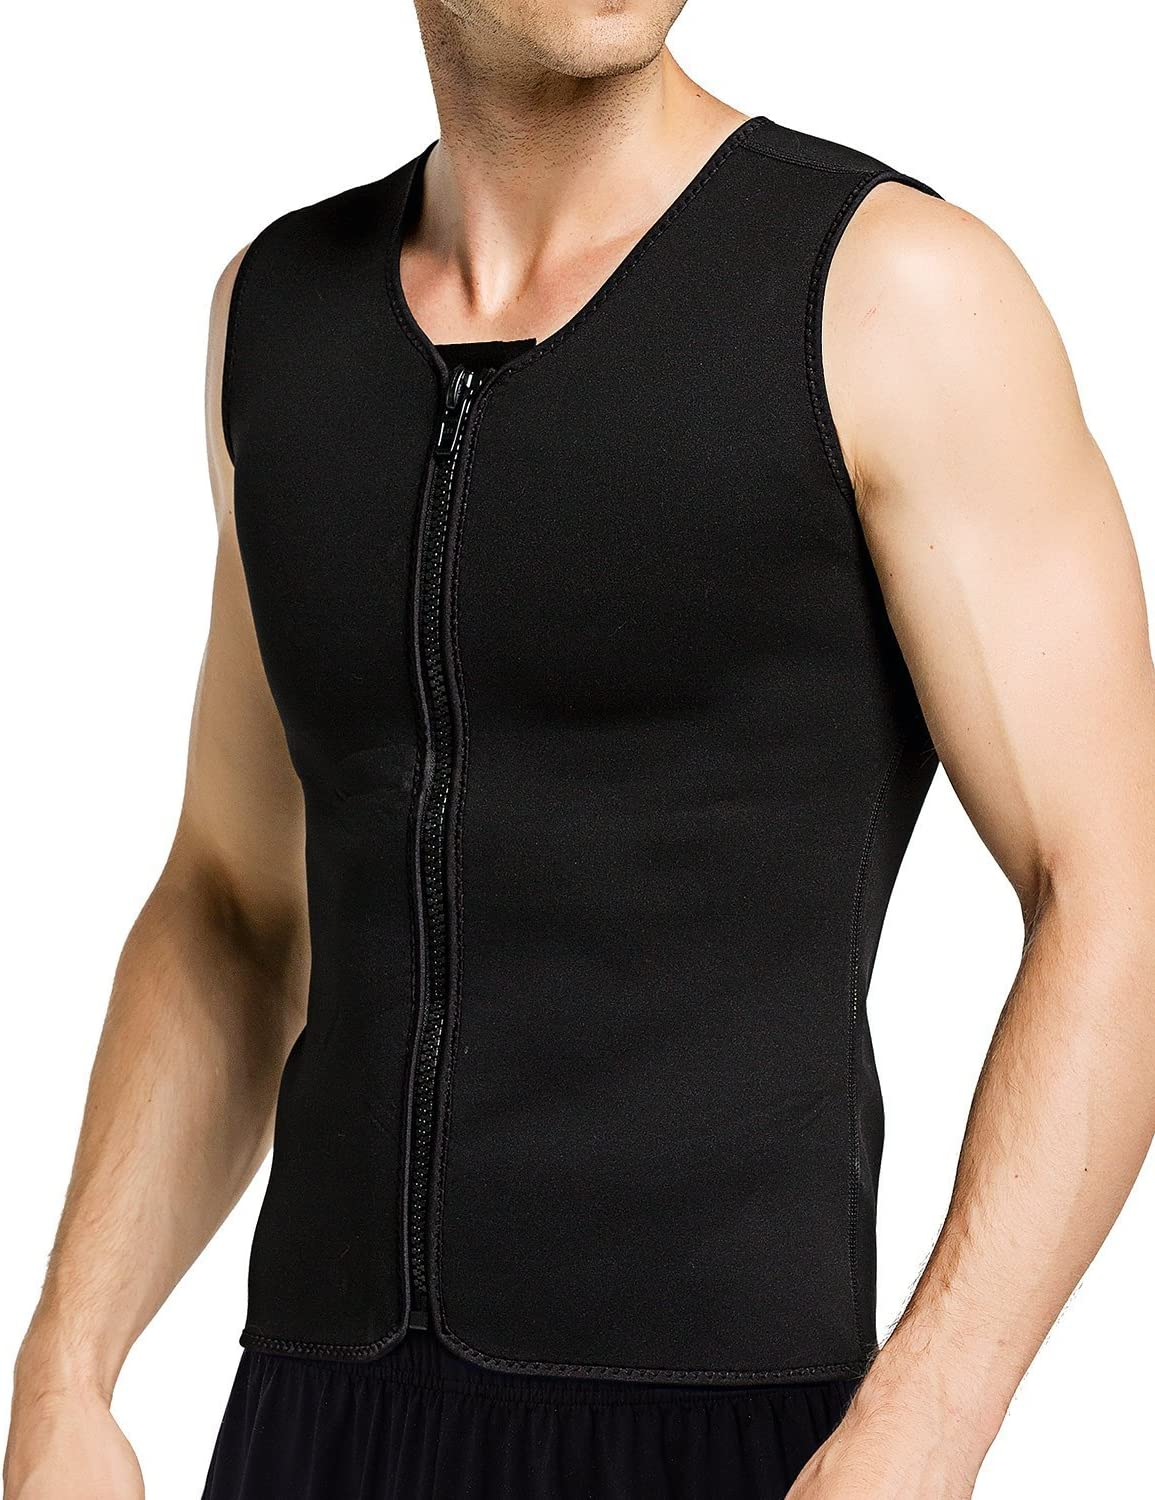 Aliver Men Hot Sweat Body Shaper Belly Fat Burner Neoprene Waist Trainer Vest Sauna Suit with Zipper for Weight Loss Gym Workout Tank Top Shirt